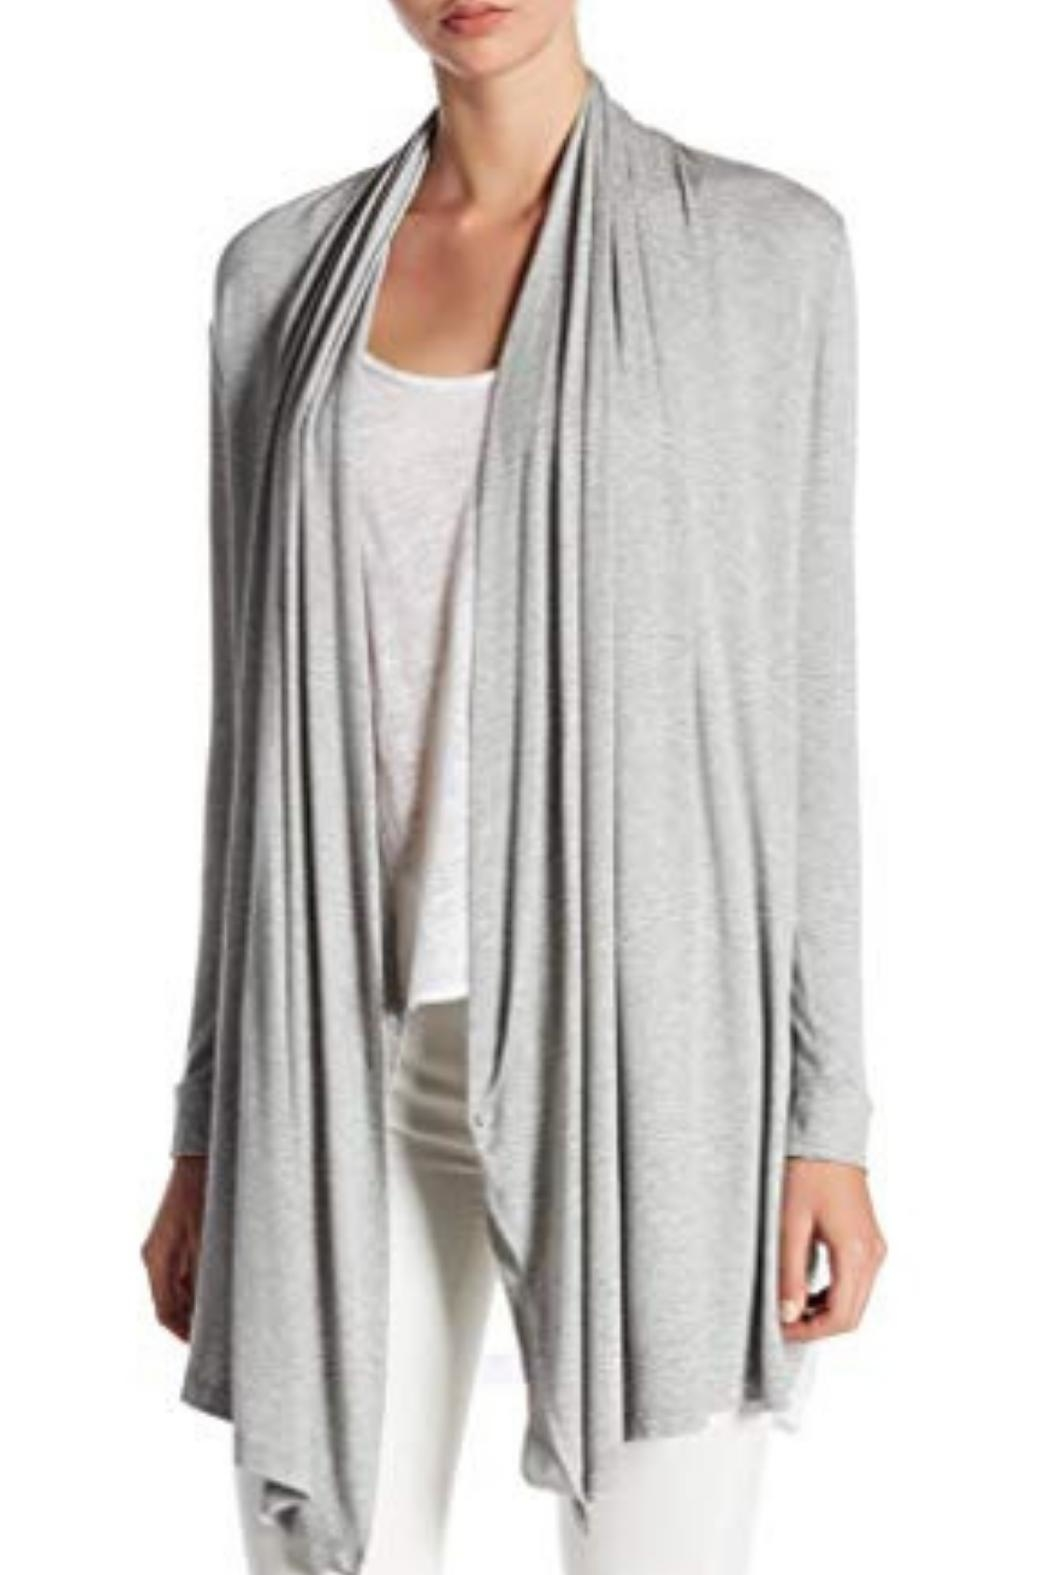 Coin 1804 Side Drape Cardigan - Main Image